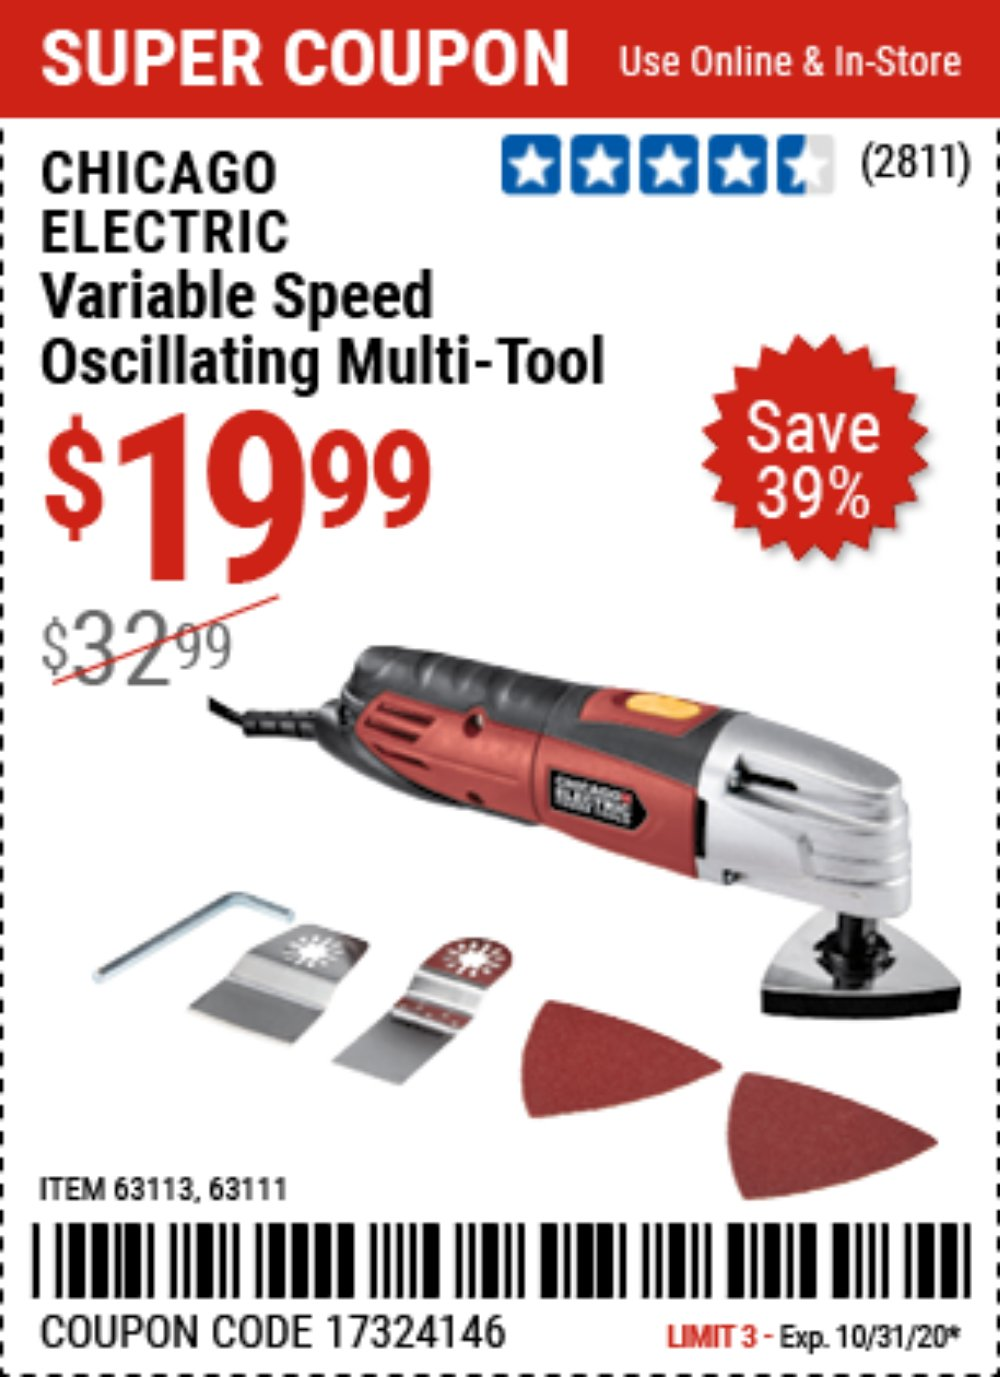 Harbor Freight Coupon, HF Coupons - Variable Speed Multifunction Power Tool